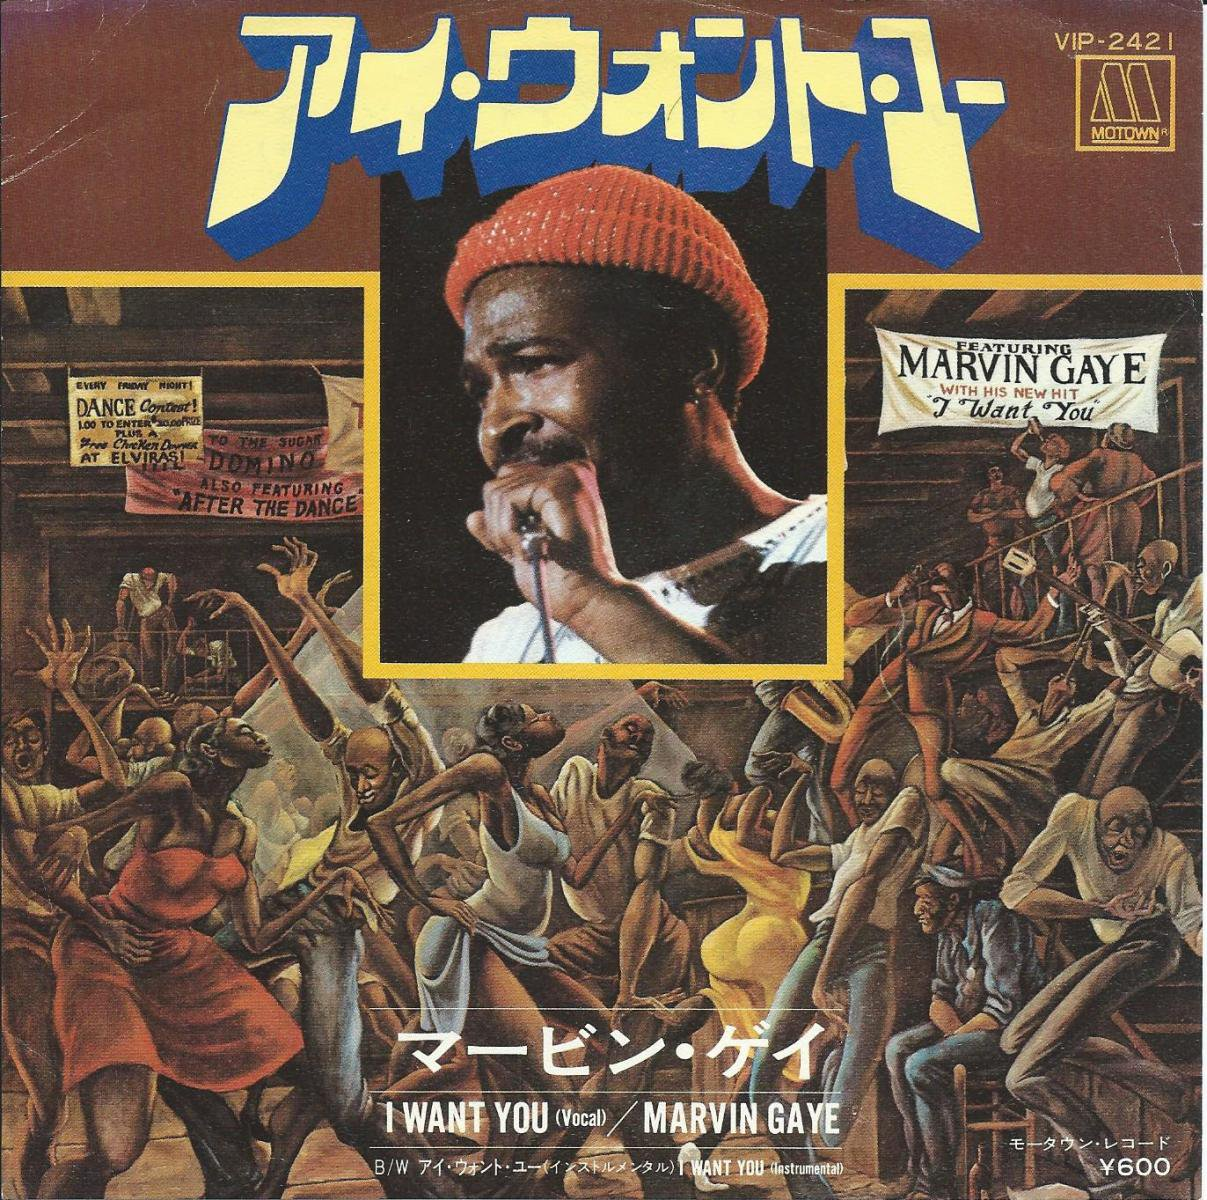 "Marvin Gaye I Want You の名作アルバム""i want you"": galleryhip.com/marvin-gaye-i-want-you.html"